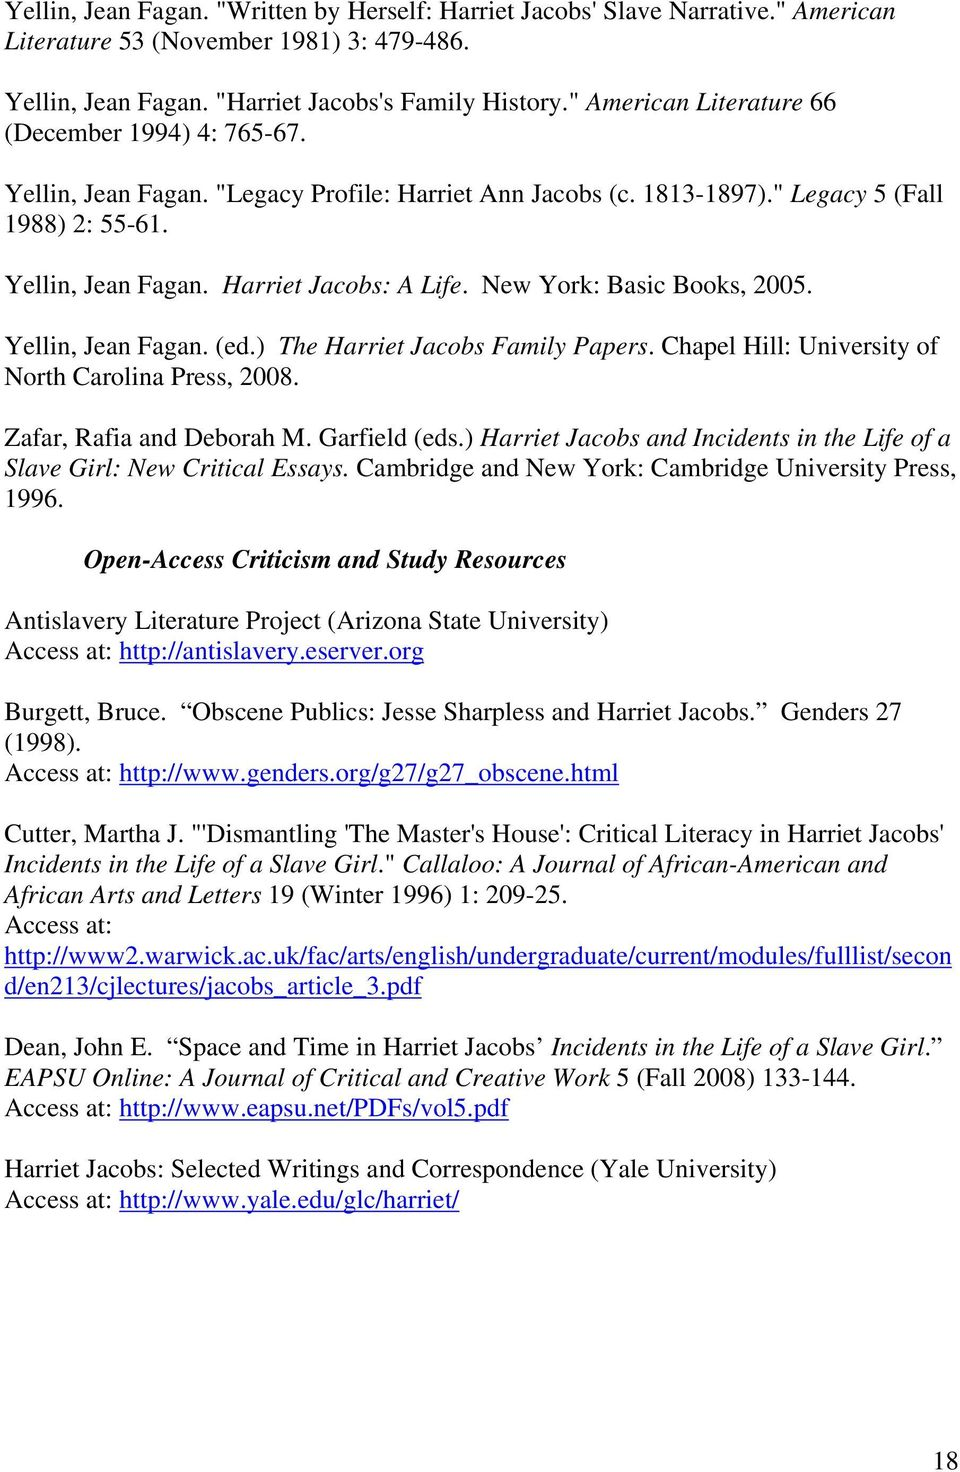 Harriet Jacobs Incidents in the Life of a Slave Girl - PDF